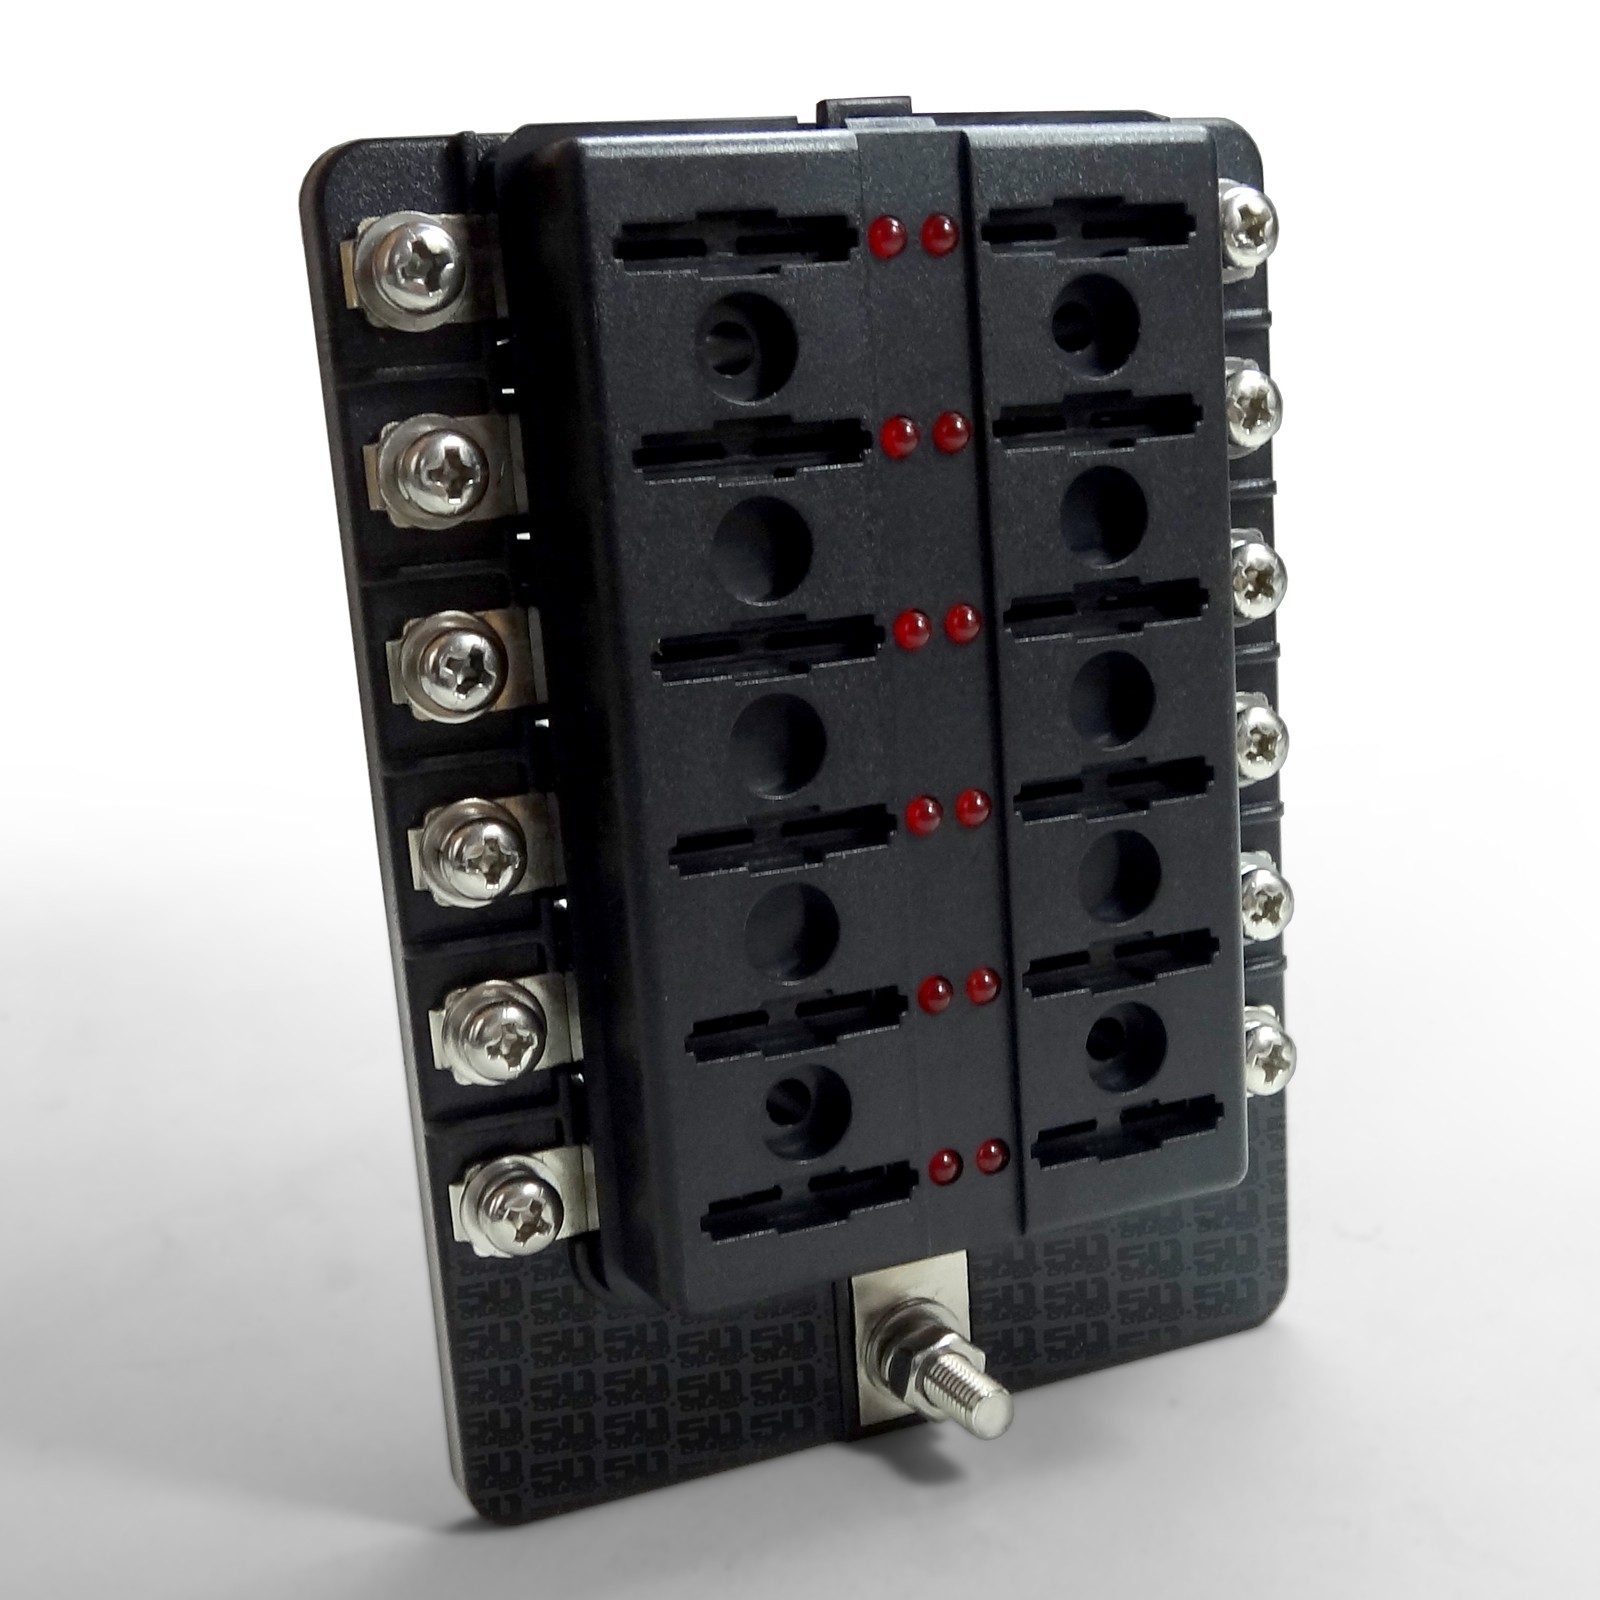 ... 12 Way Standard LED Circuit Blade Fuse Box ...